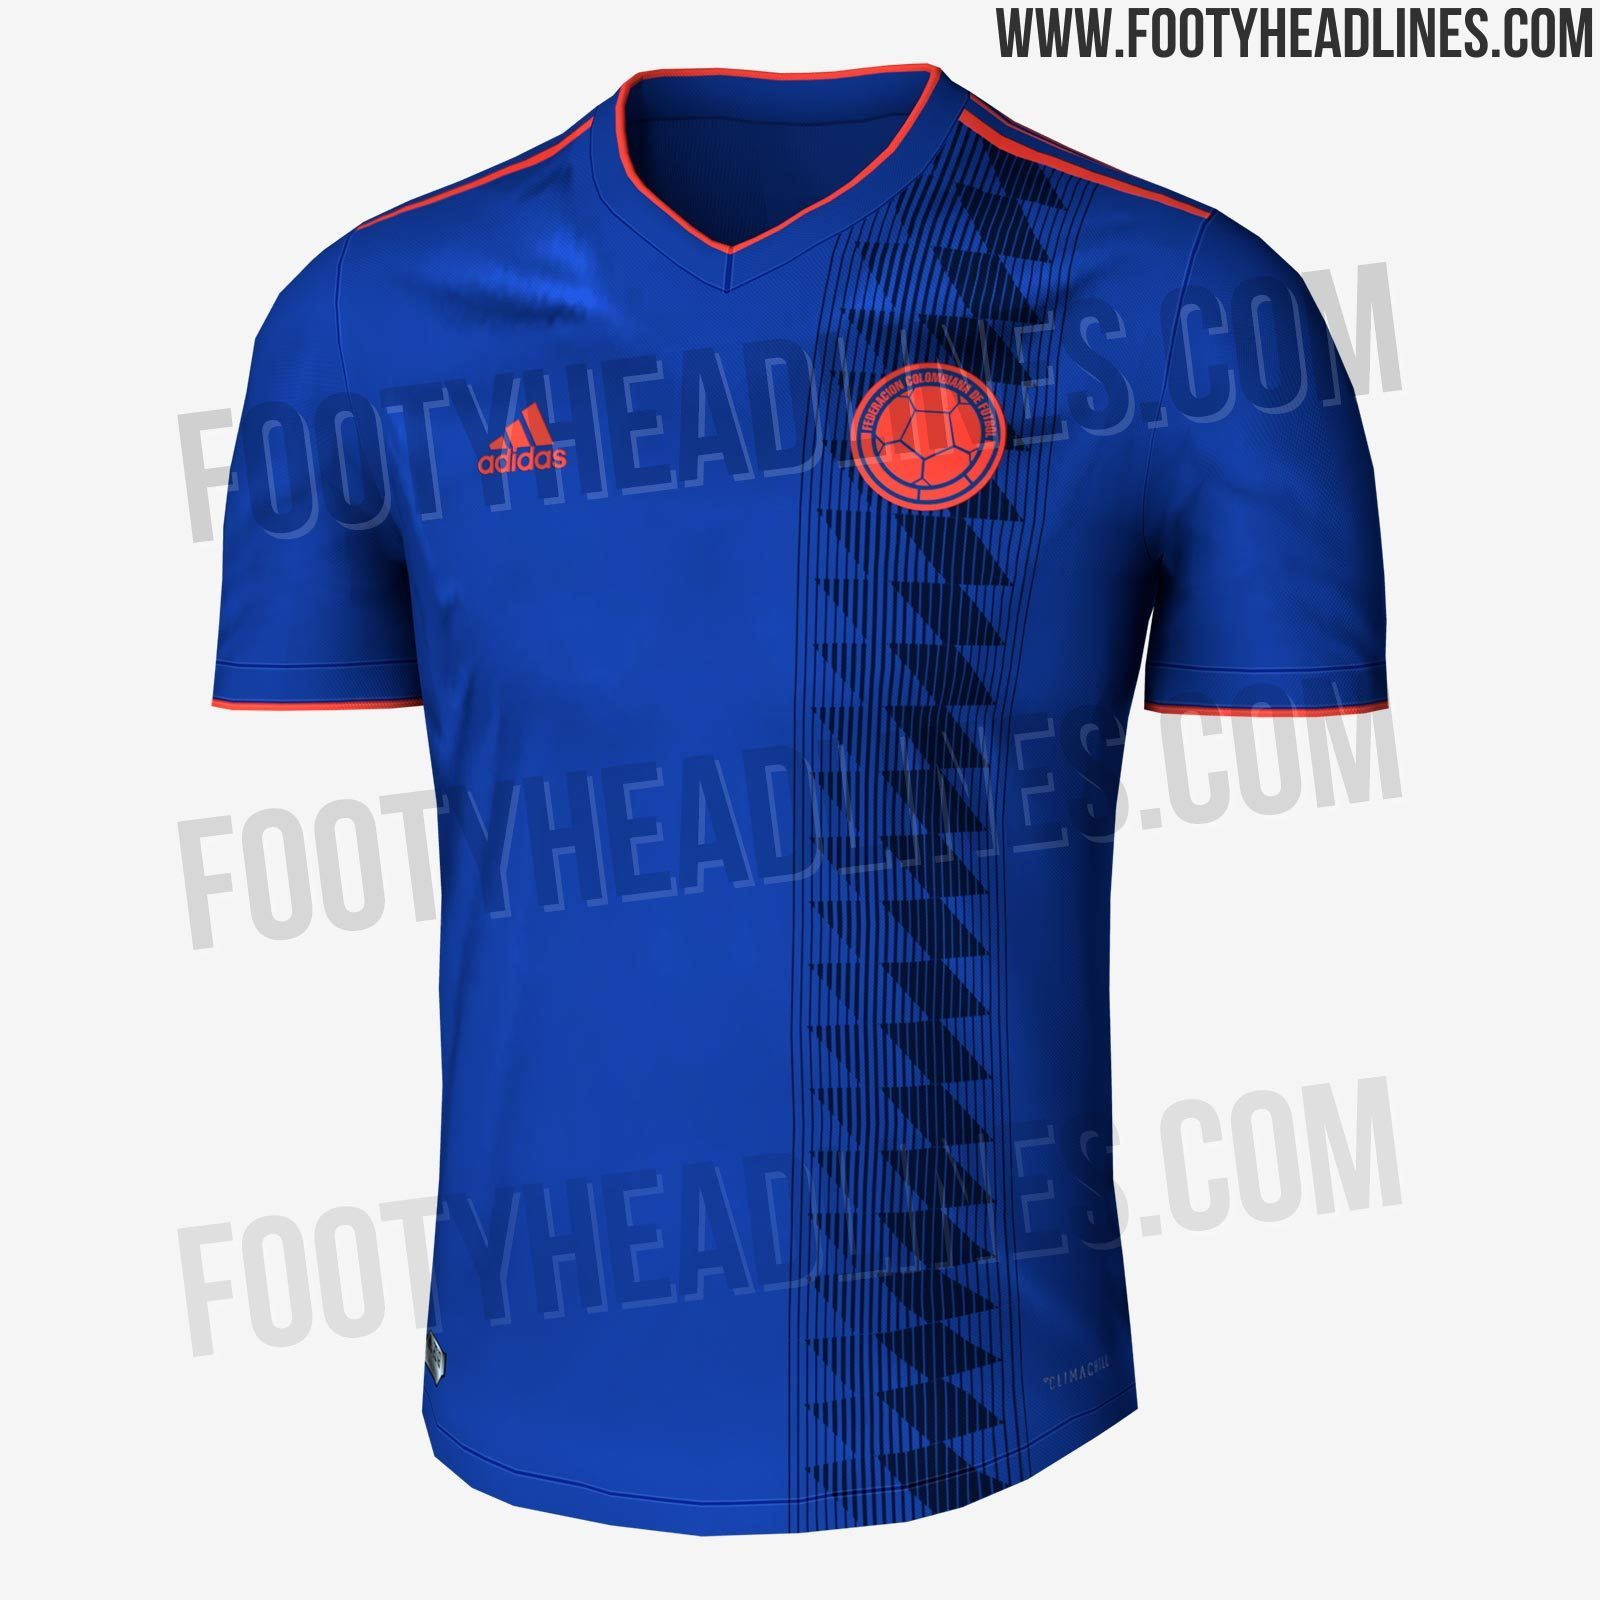 Colombia-2018-adidas-new-away-kit-Leaked-3.jpg